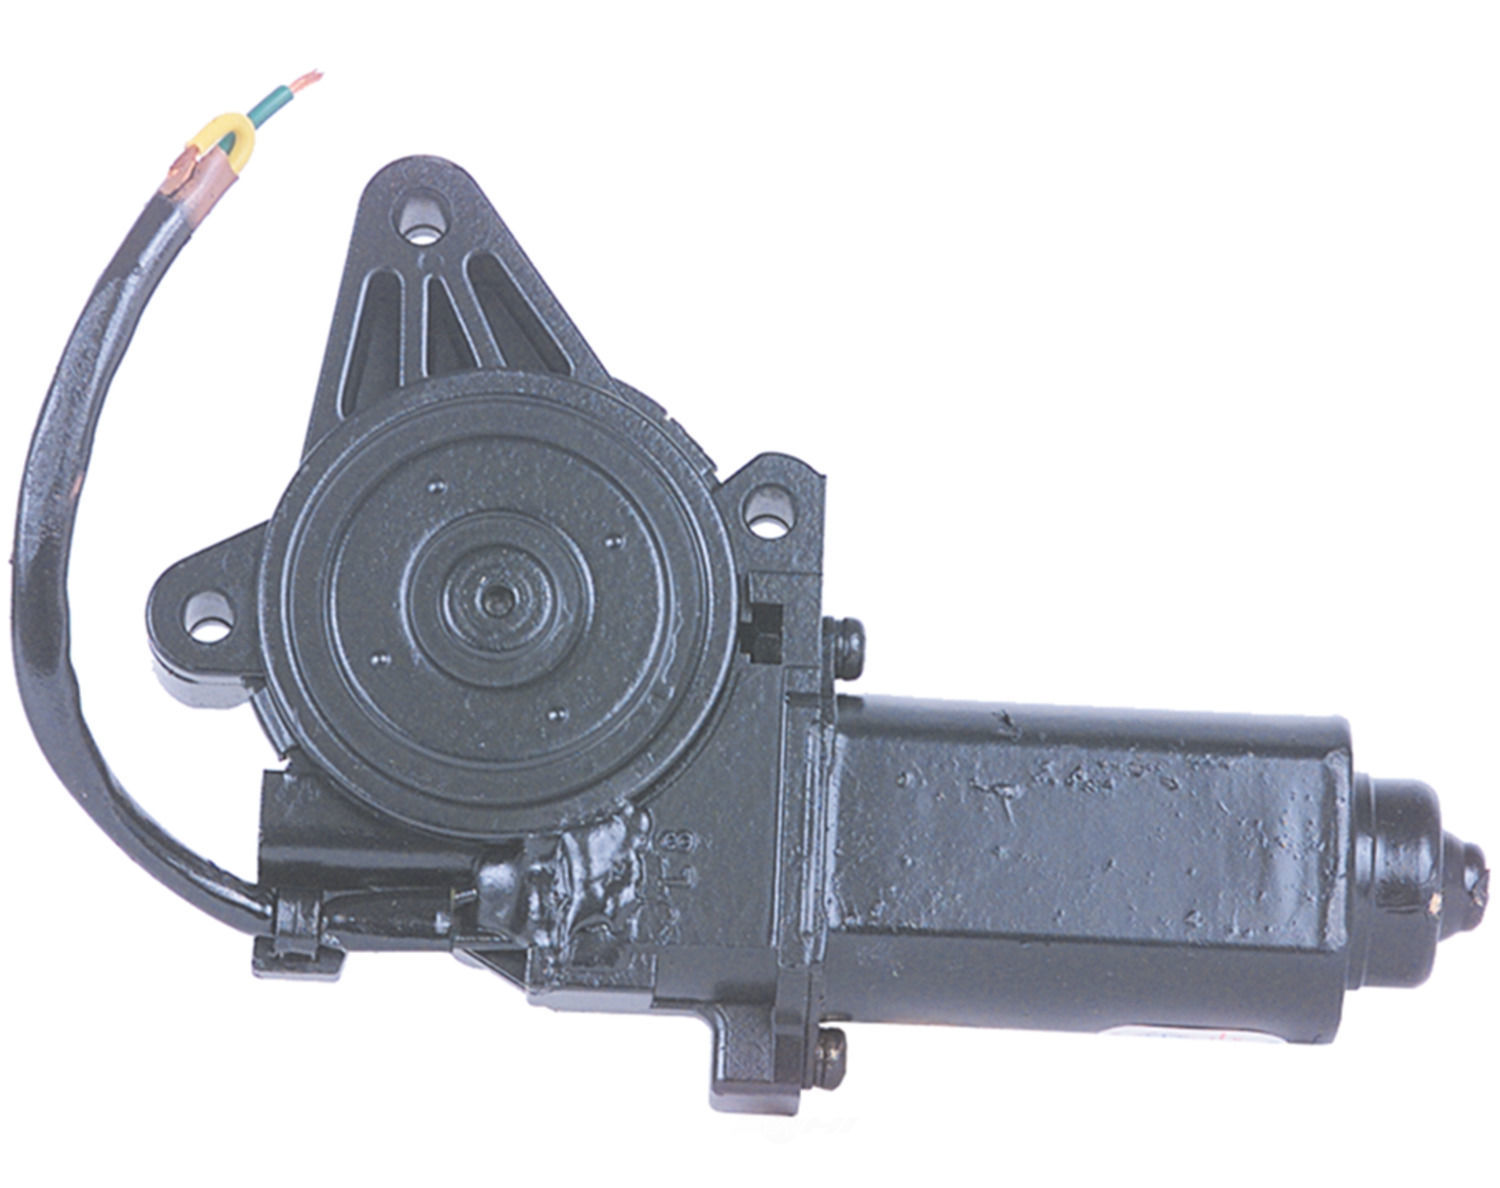 CARDONE REMAN - Window Lift Motor - A1C 42-613